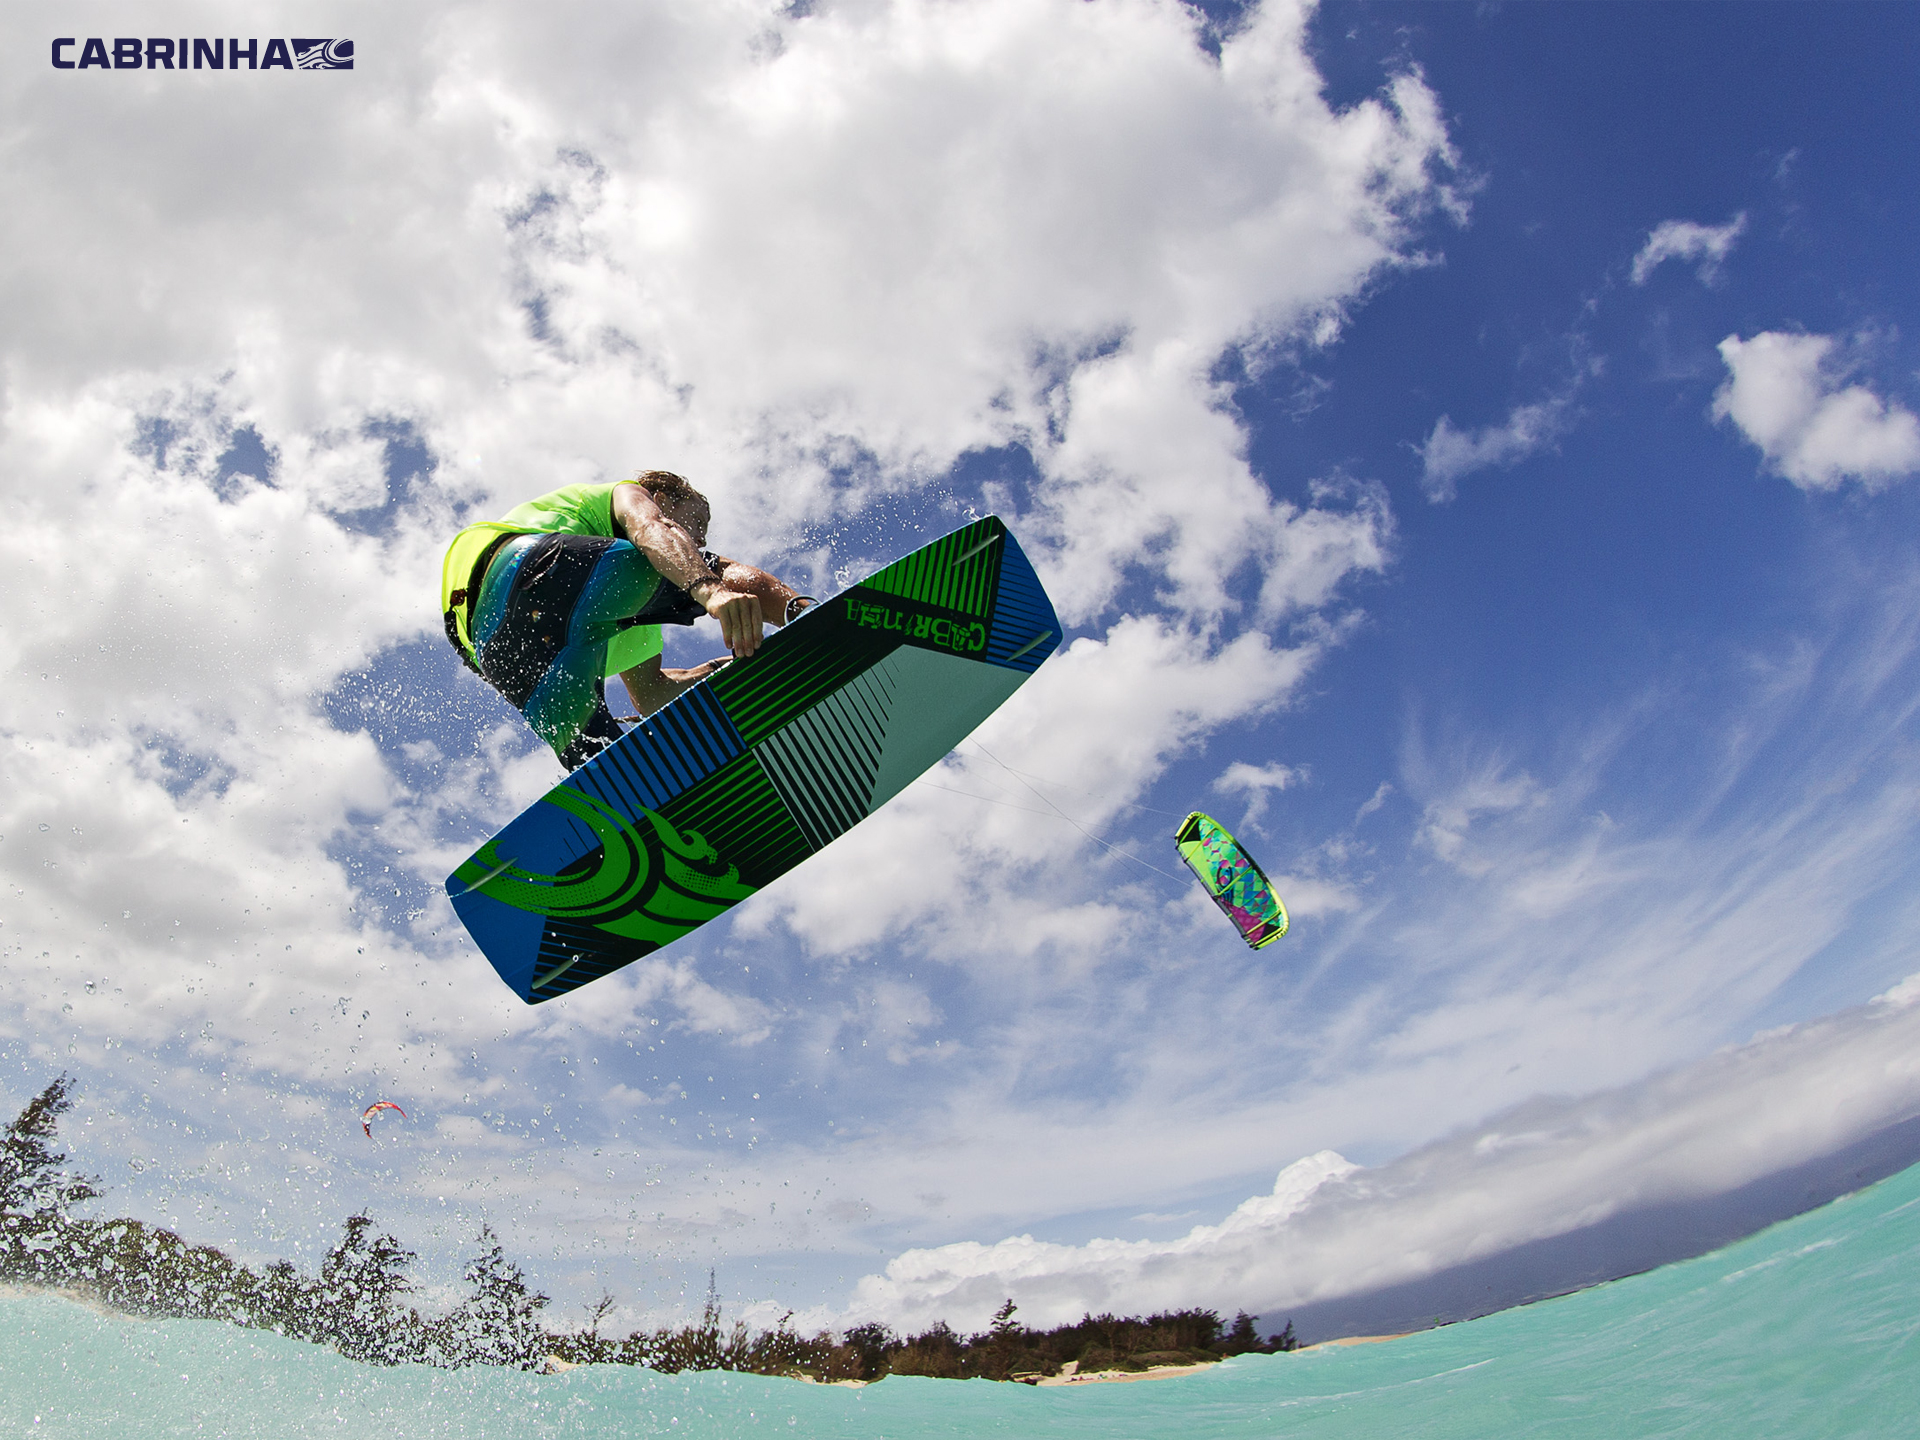 kitesurf wallpaper image - Alberto Rondina flying over tropical water on his Cabrinha kite - in resolution: Standard 4:3 1920 X 1440